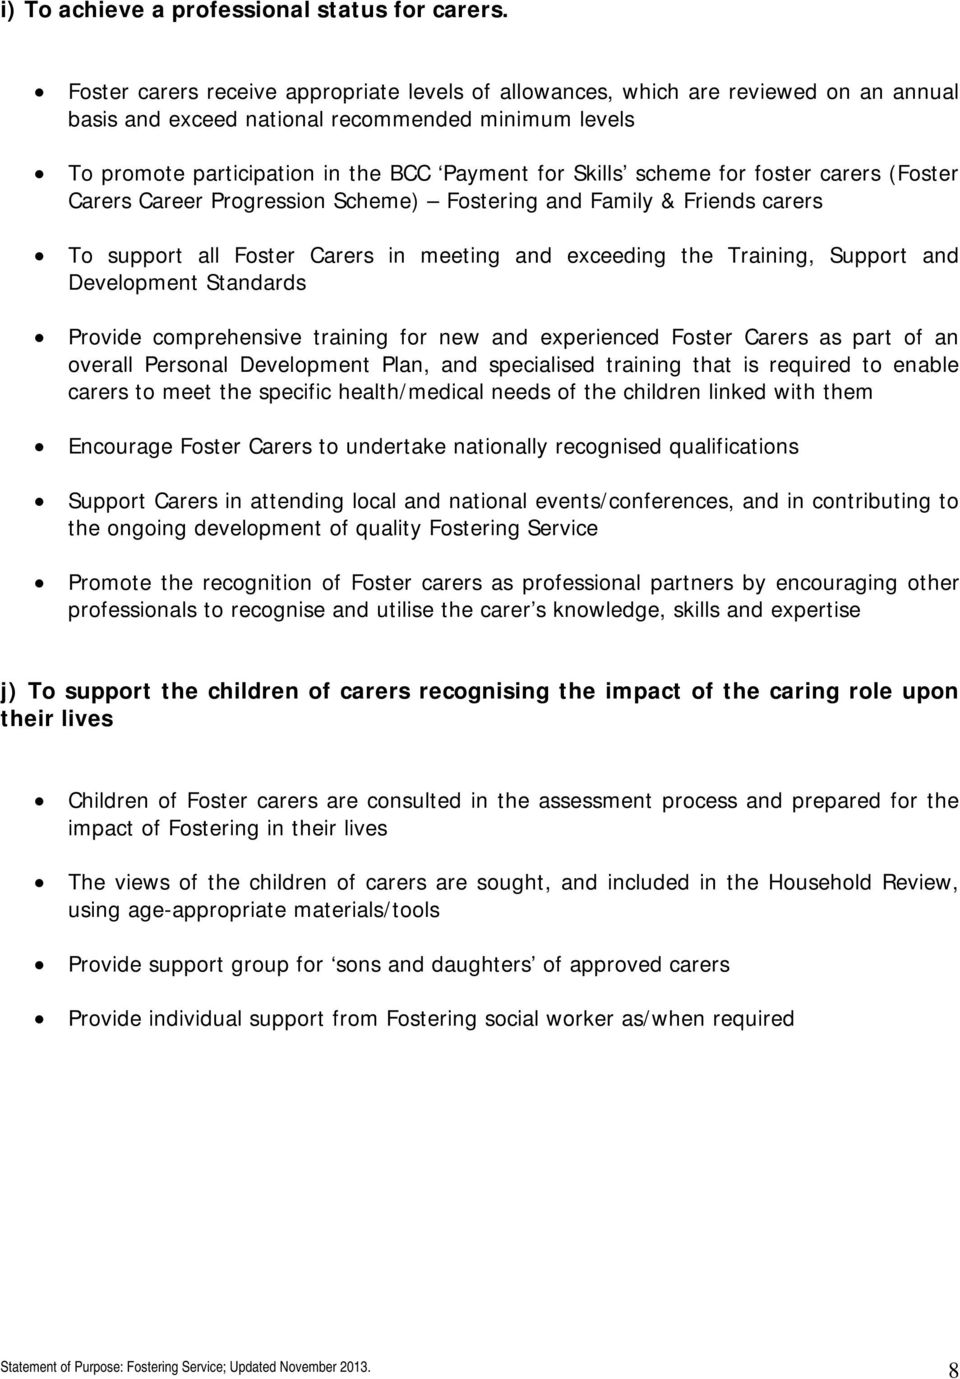 scheme for foster carers (Foster Carers Career Progression Scheme) Fostering and Family & Friends carers To support all Foster Carers in meeting and exceeding the Training, Support and Development